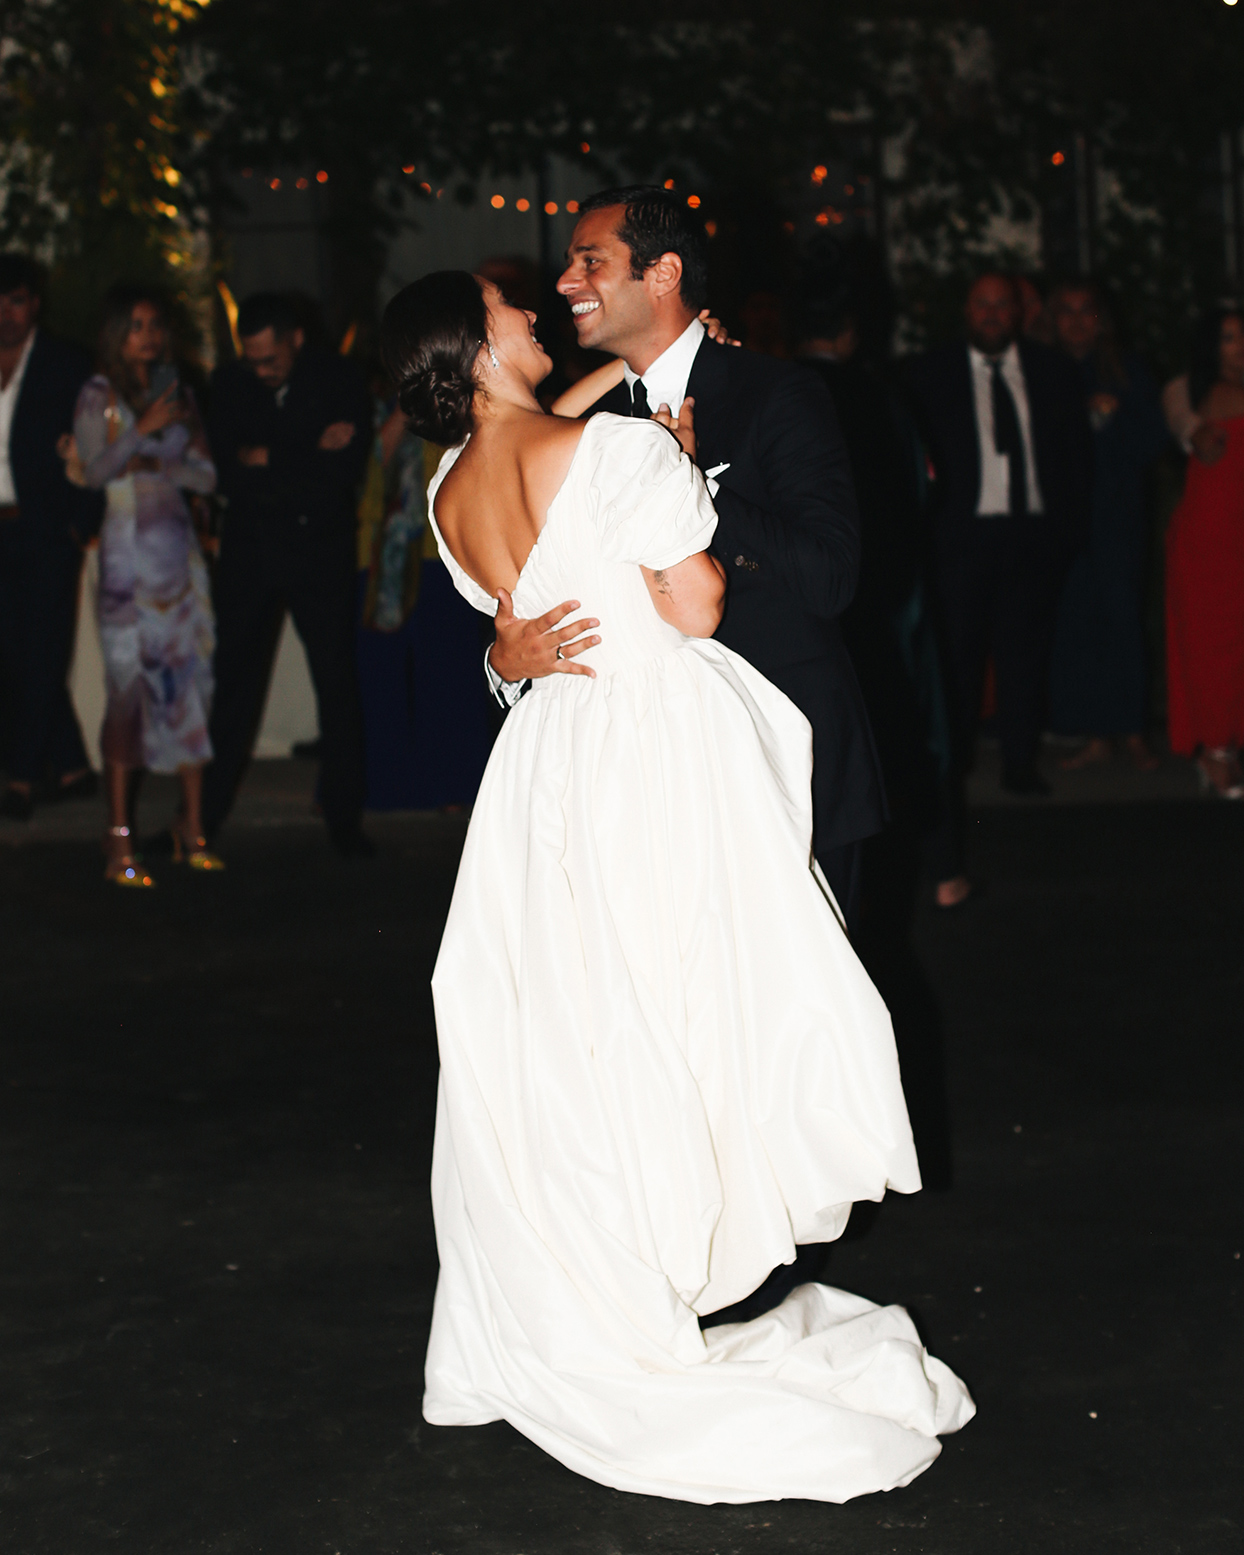 pia david wedding couple first dance